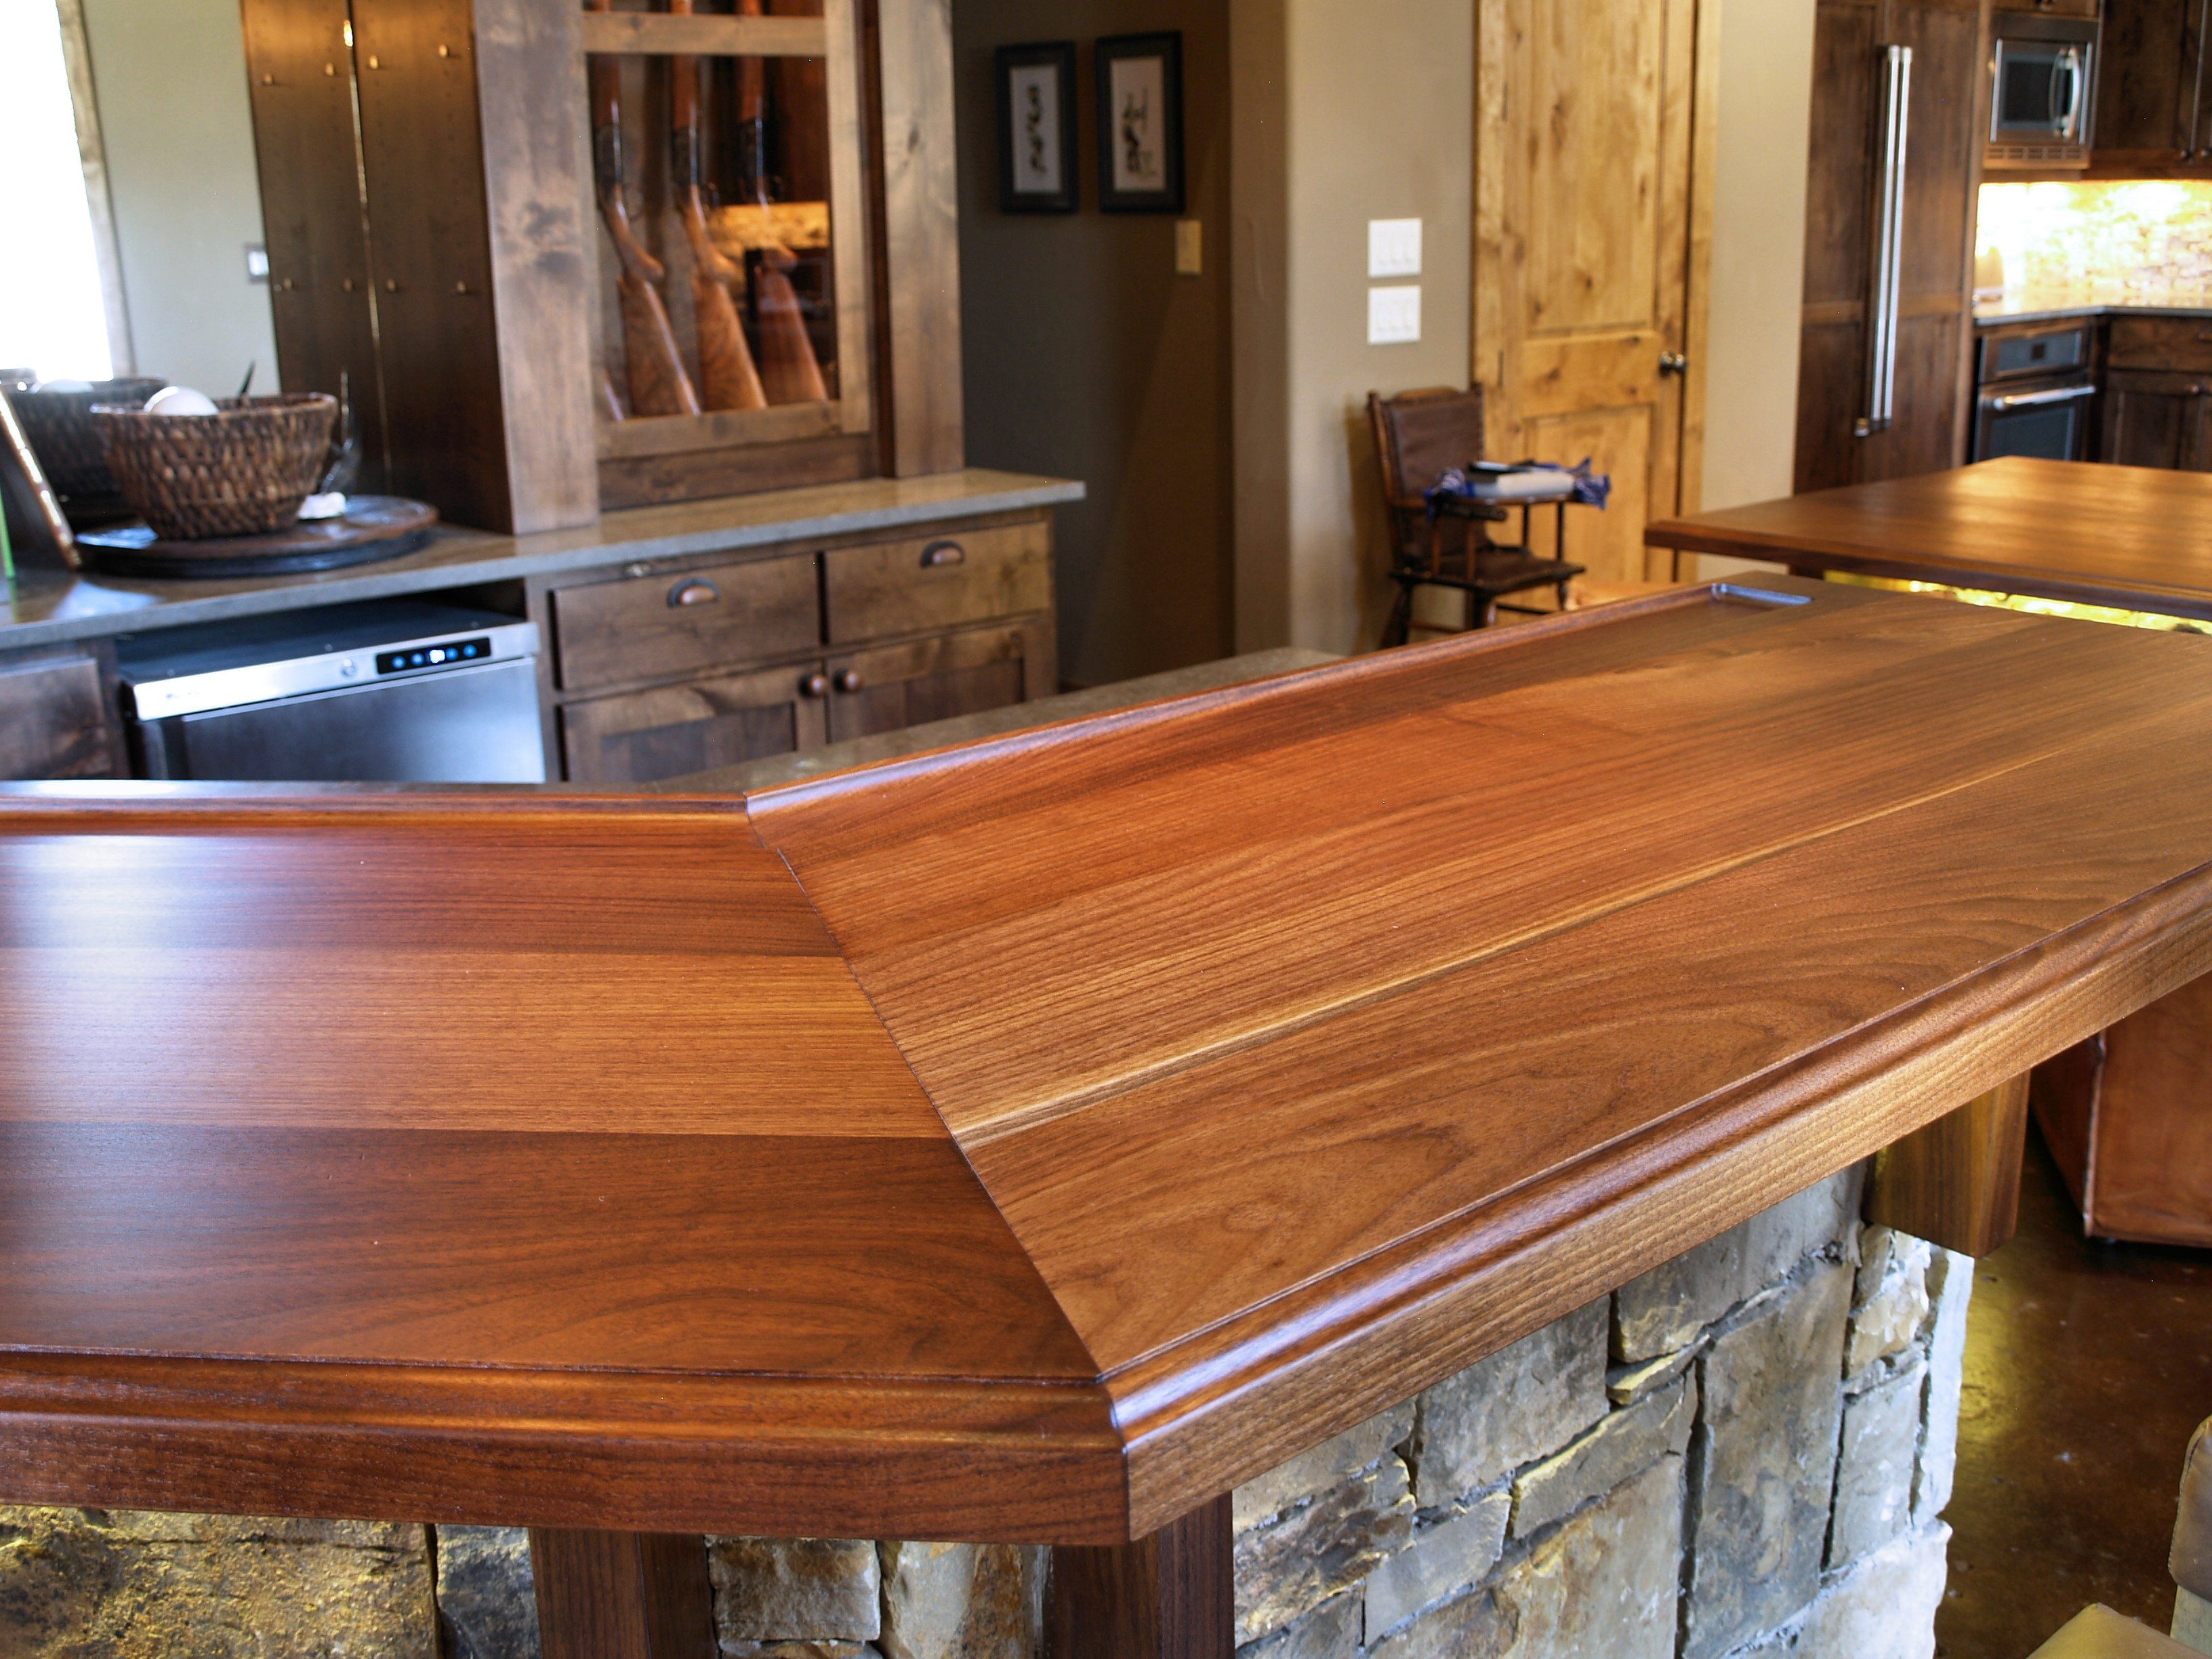 Mitre Joint On A Texas Walnut Wood Bar Top Face Grain Construction With Waterlox